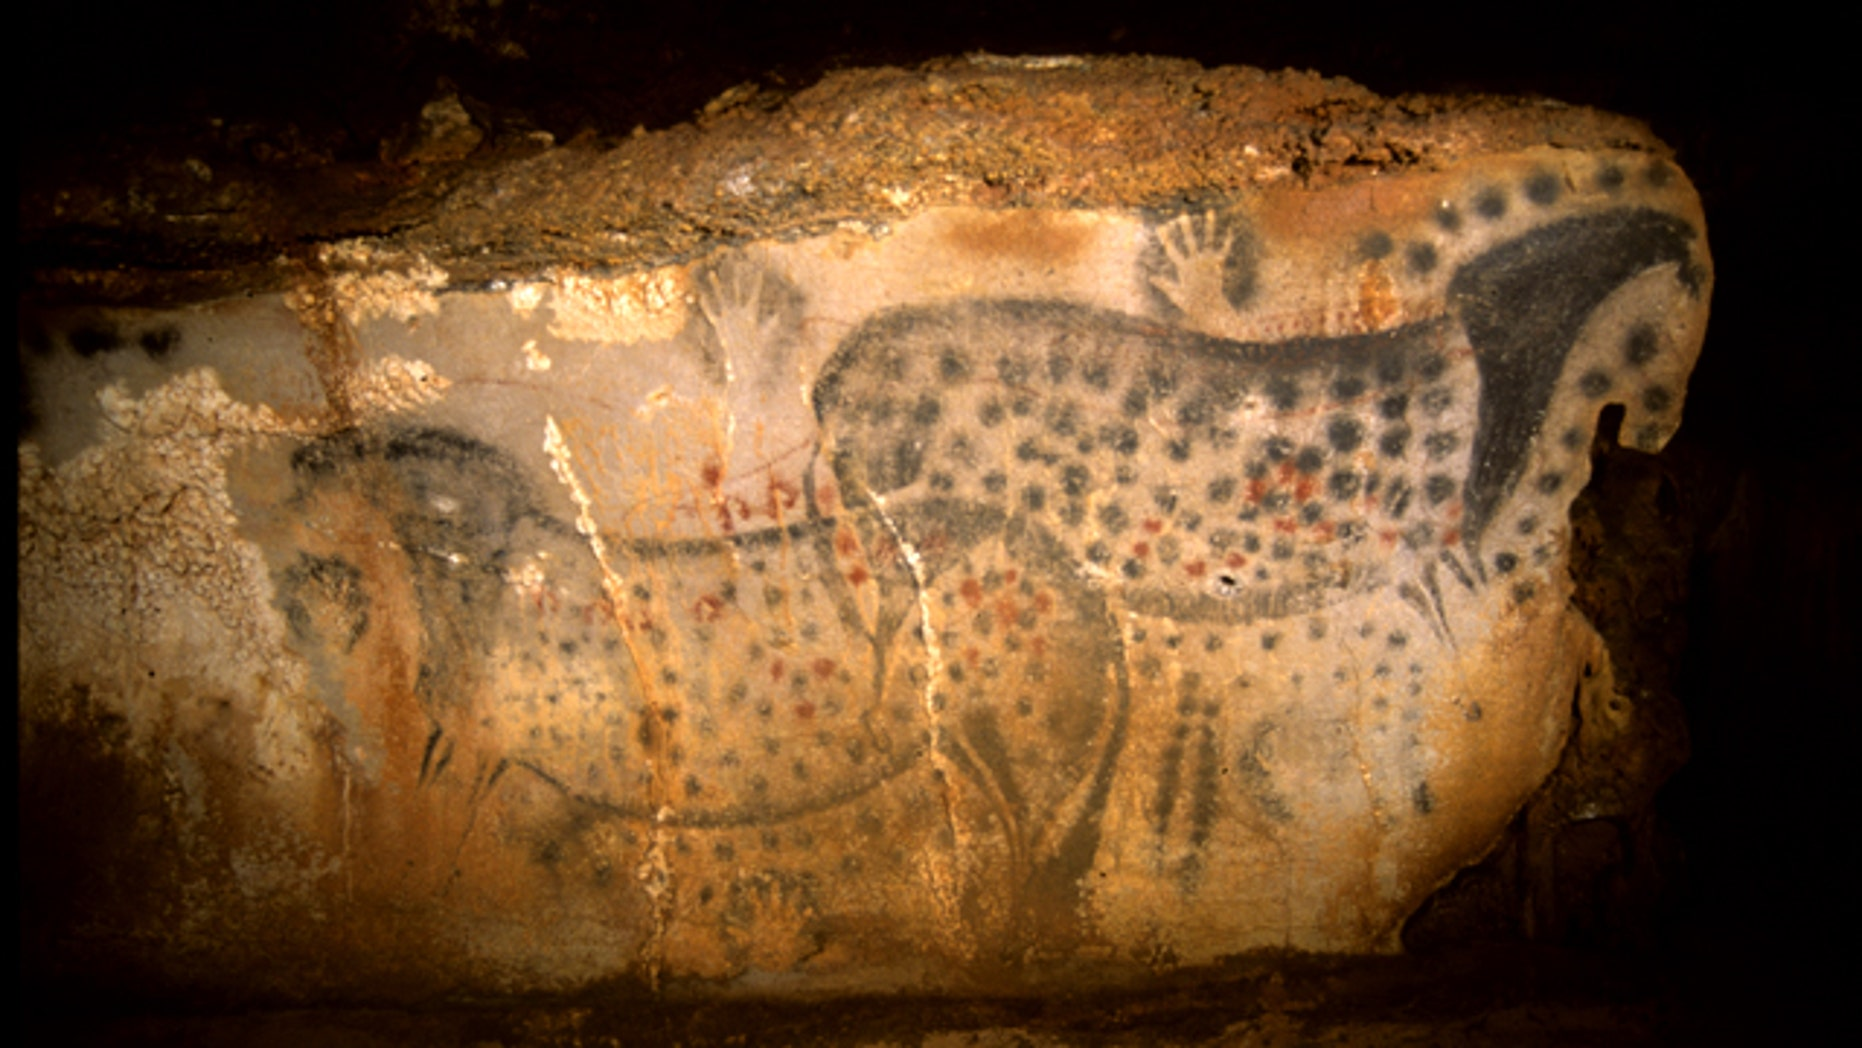 This undated photo provided by the Pech Merle Prehistory Center shows a cave painting of pair of spotted horses, found in the Pech Merle Cave in Cabrerets, southern France. Scientists estimate the drawing, measuring about 4 meters wide by 1.5 meters high, is about 25,000 years old.